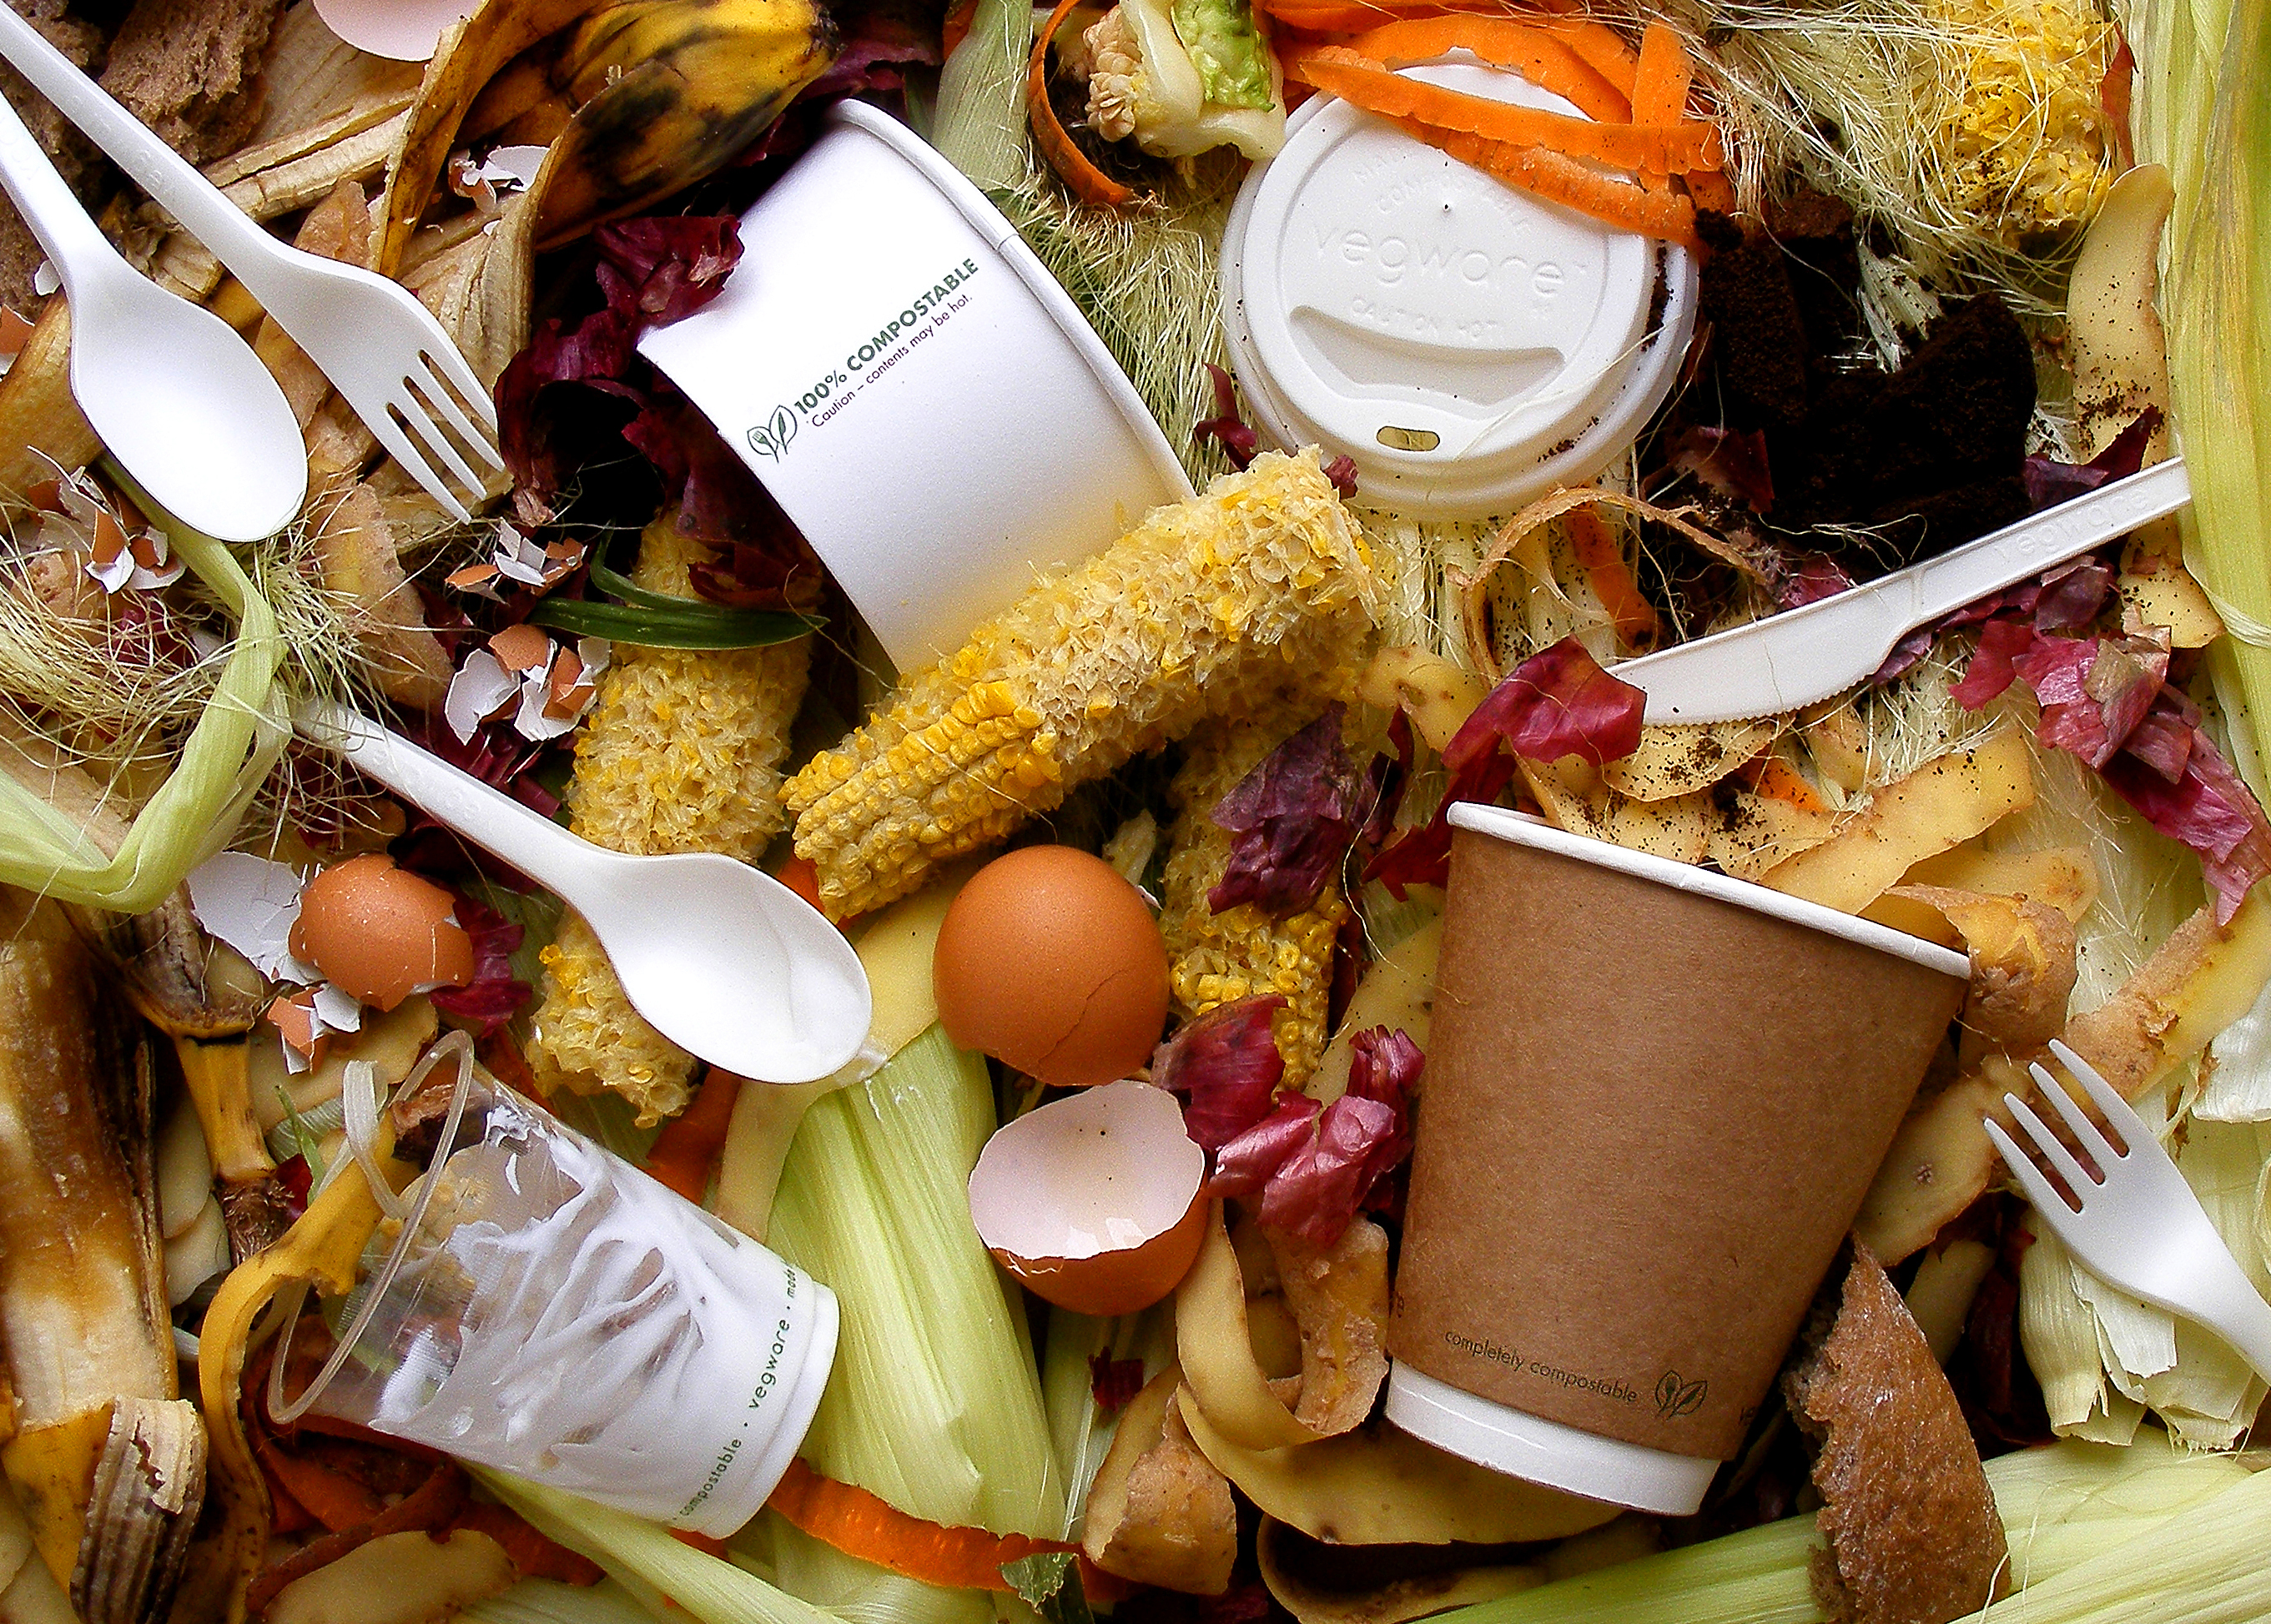 How To Make Compost From Leftover Food